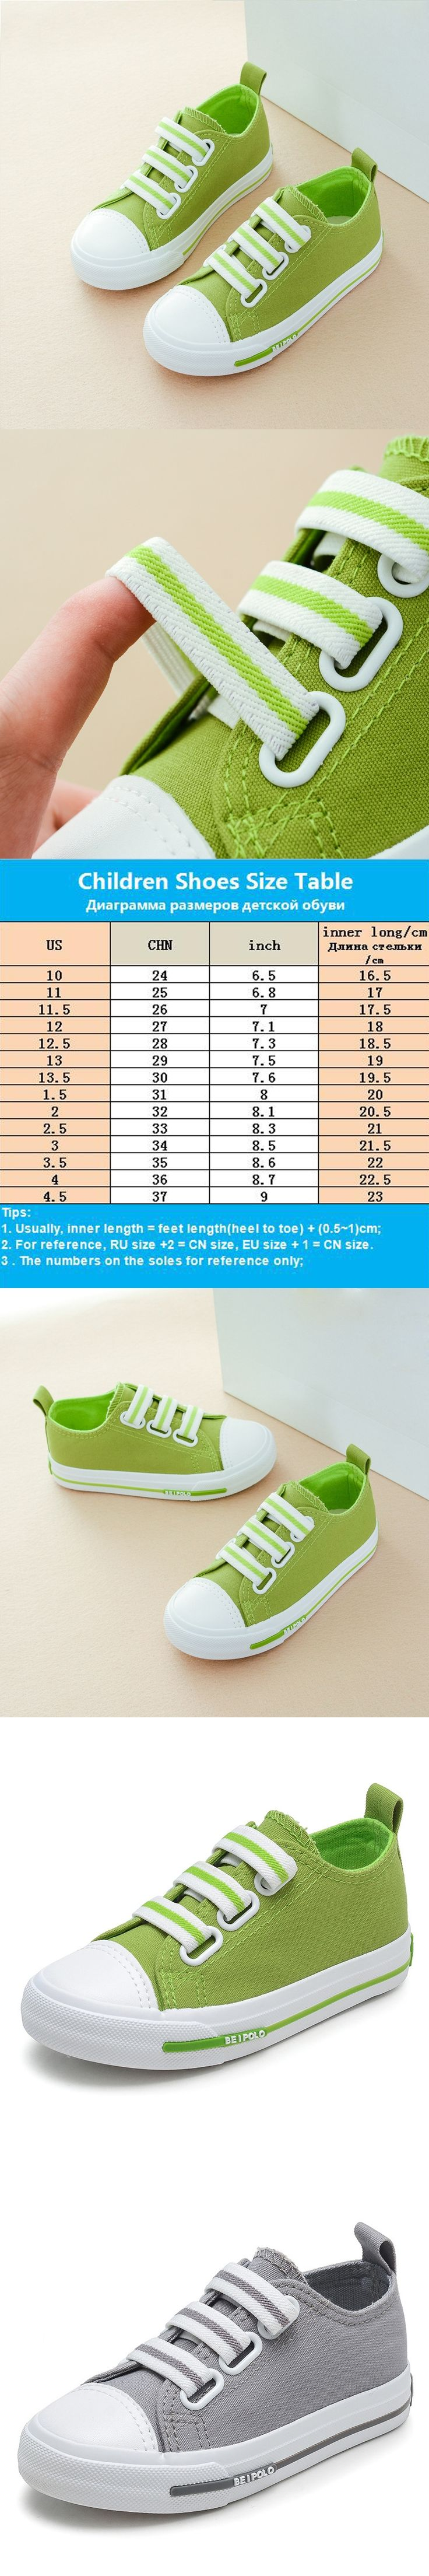 Canvas Shoes for Kids Boys Casual Sneakers Fashion Candy Colors Students Girls Breathable Casual Flat Running Shoes tenis menino